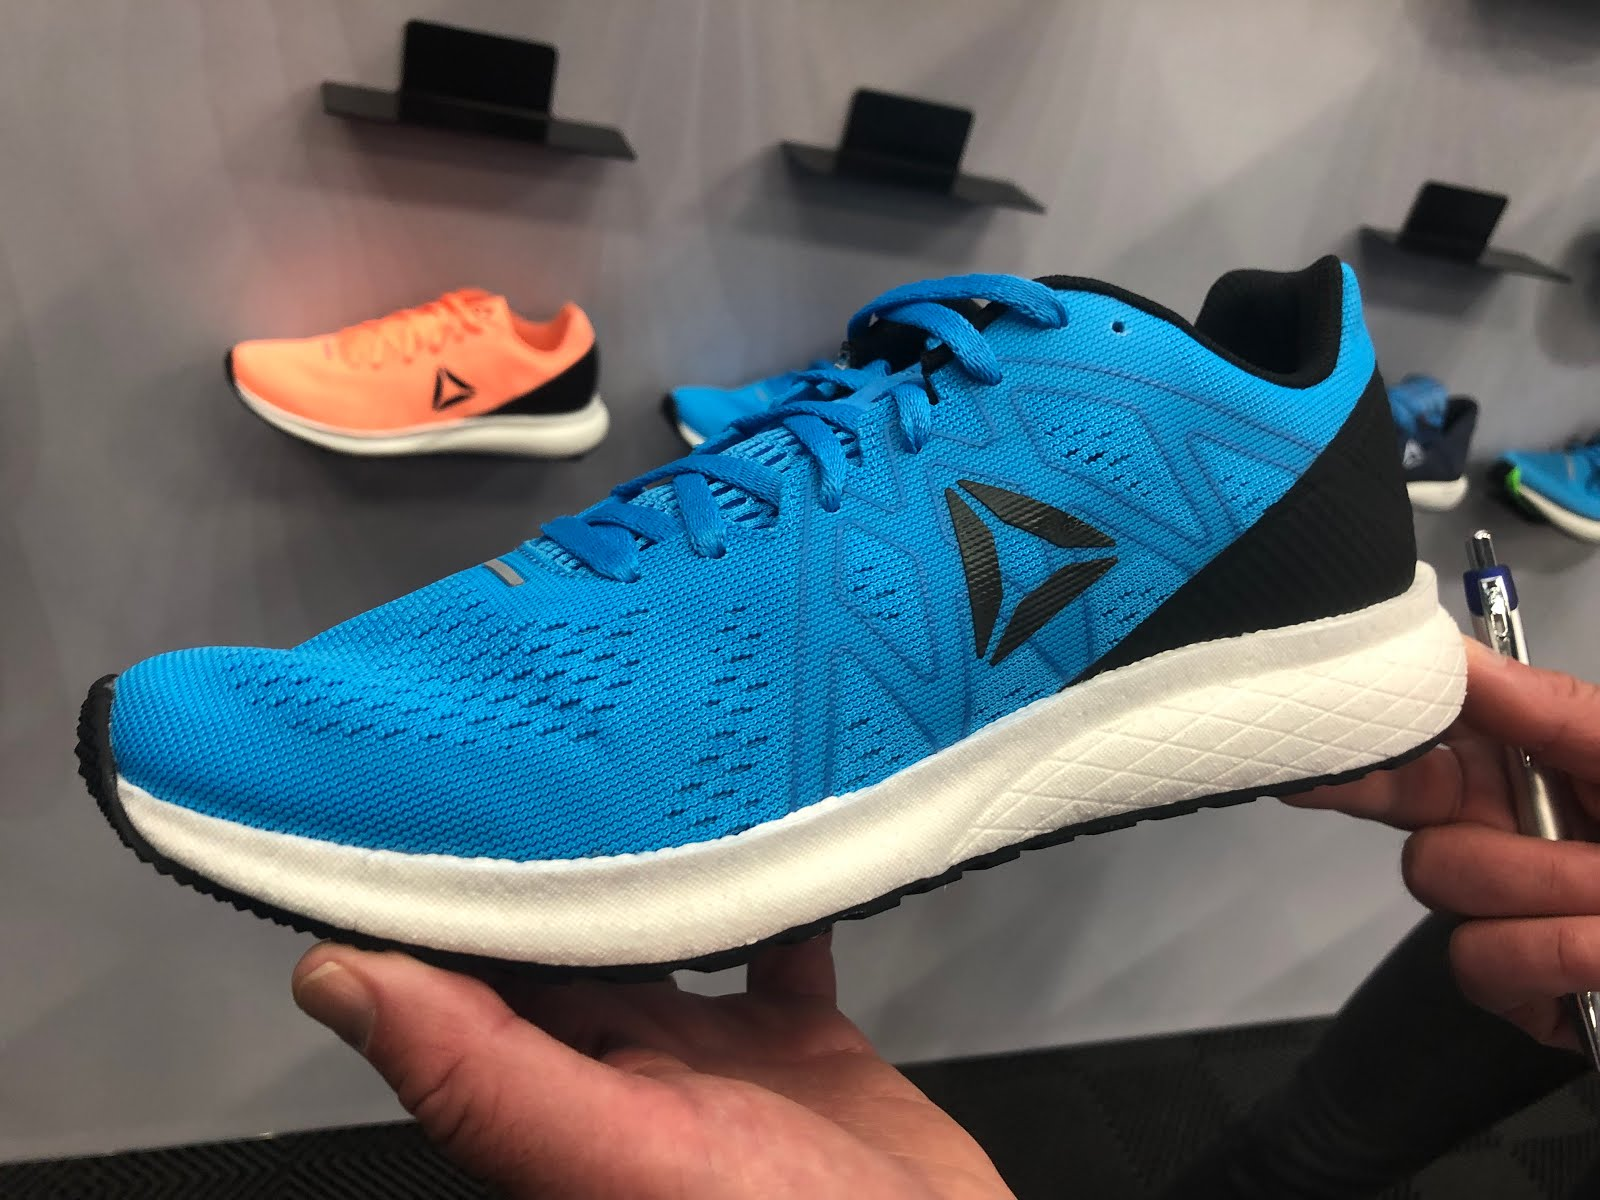 dbf261b23790b1 The new Energy joins the class of simple lower weight running shoes with  few frills which promise a lively ride and versatility.